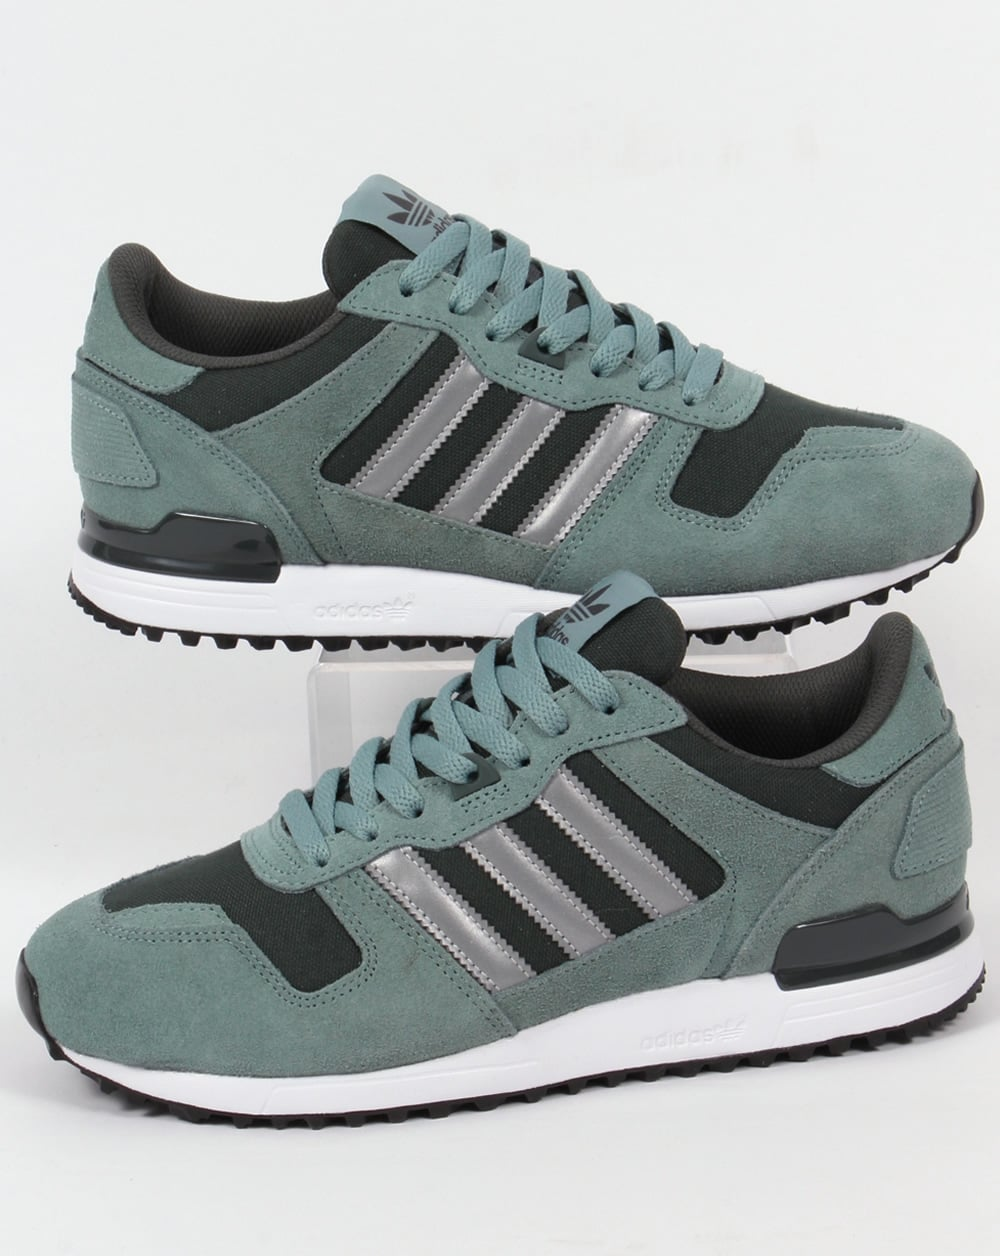 404476bf8 adidas Trainers Adidas ZX 700 Trainers Steel Grey